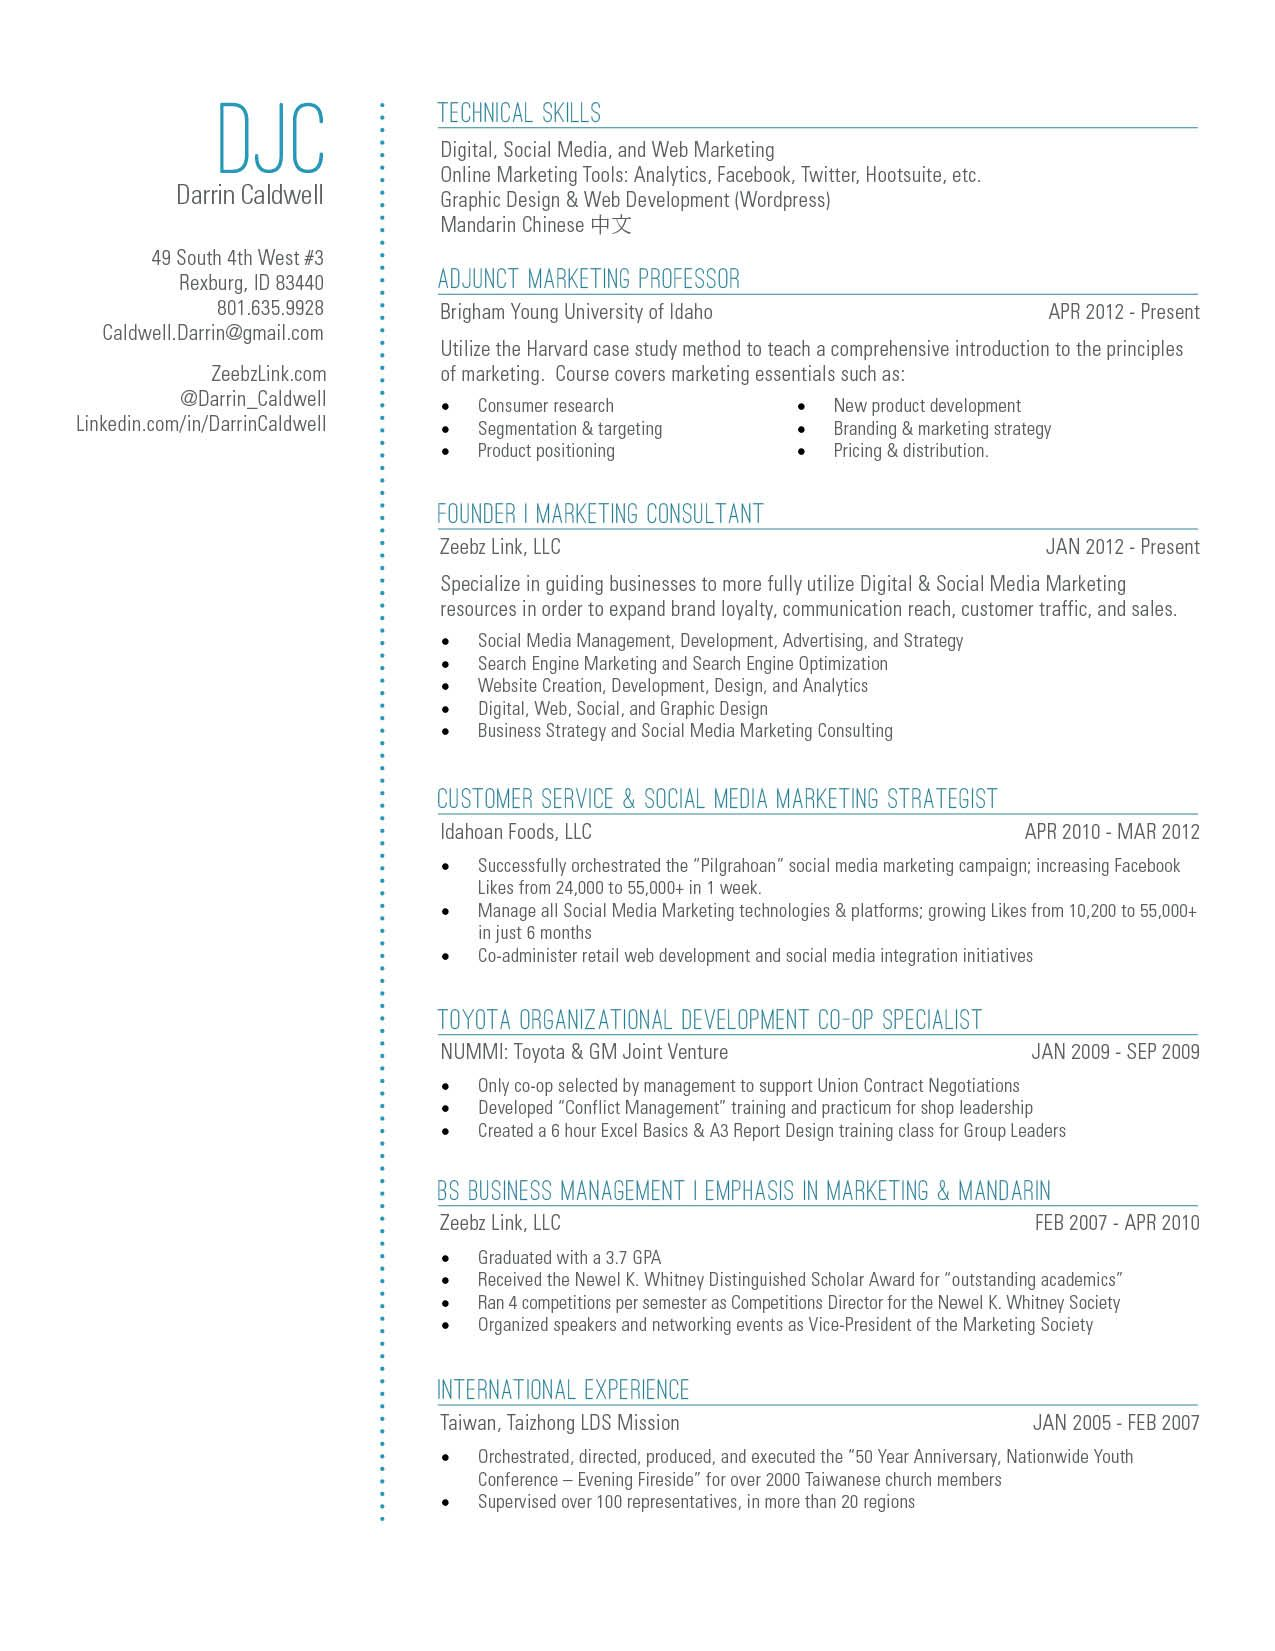 resume Business Resume Design my new resume design with a touch of blue resumedesign improvement on current design